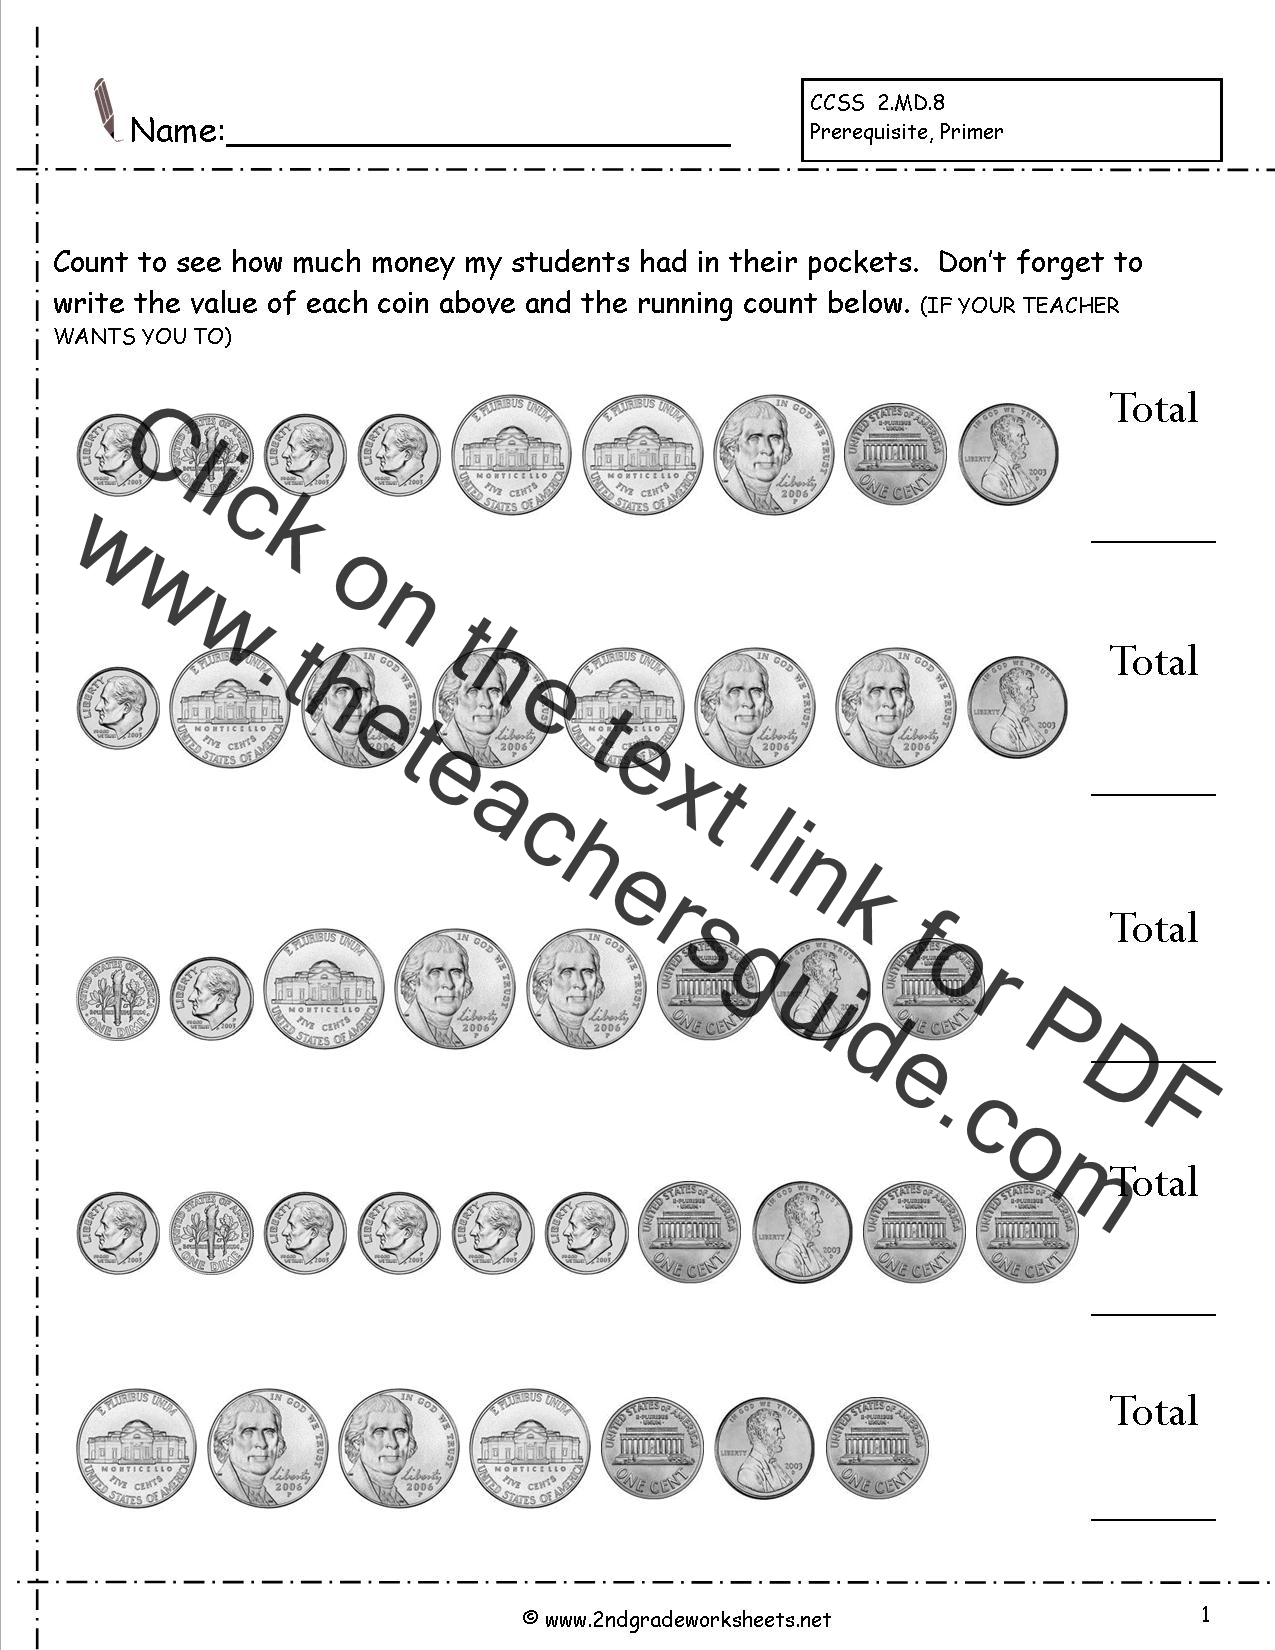 Printables Coin Value Worksheets counting coins and money worksheets printouts worksheet